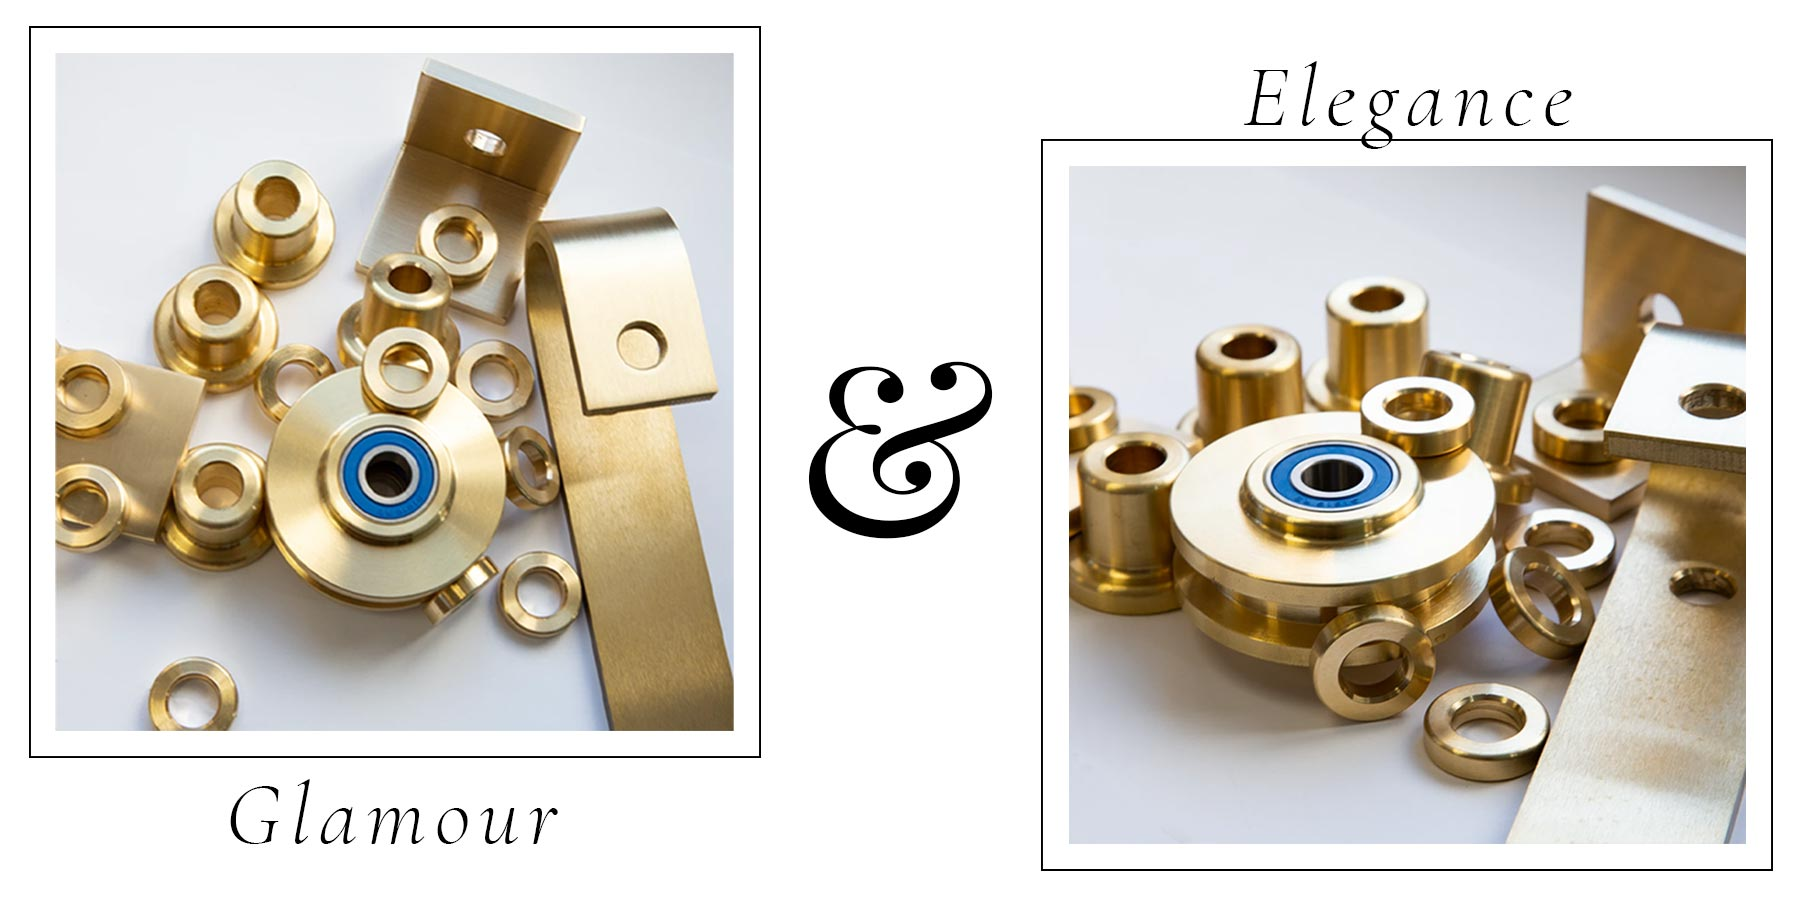 Glamour and elegance hardware parts - RealCraft